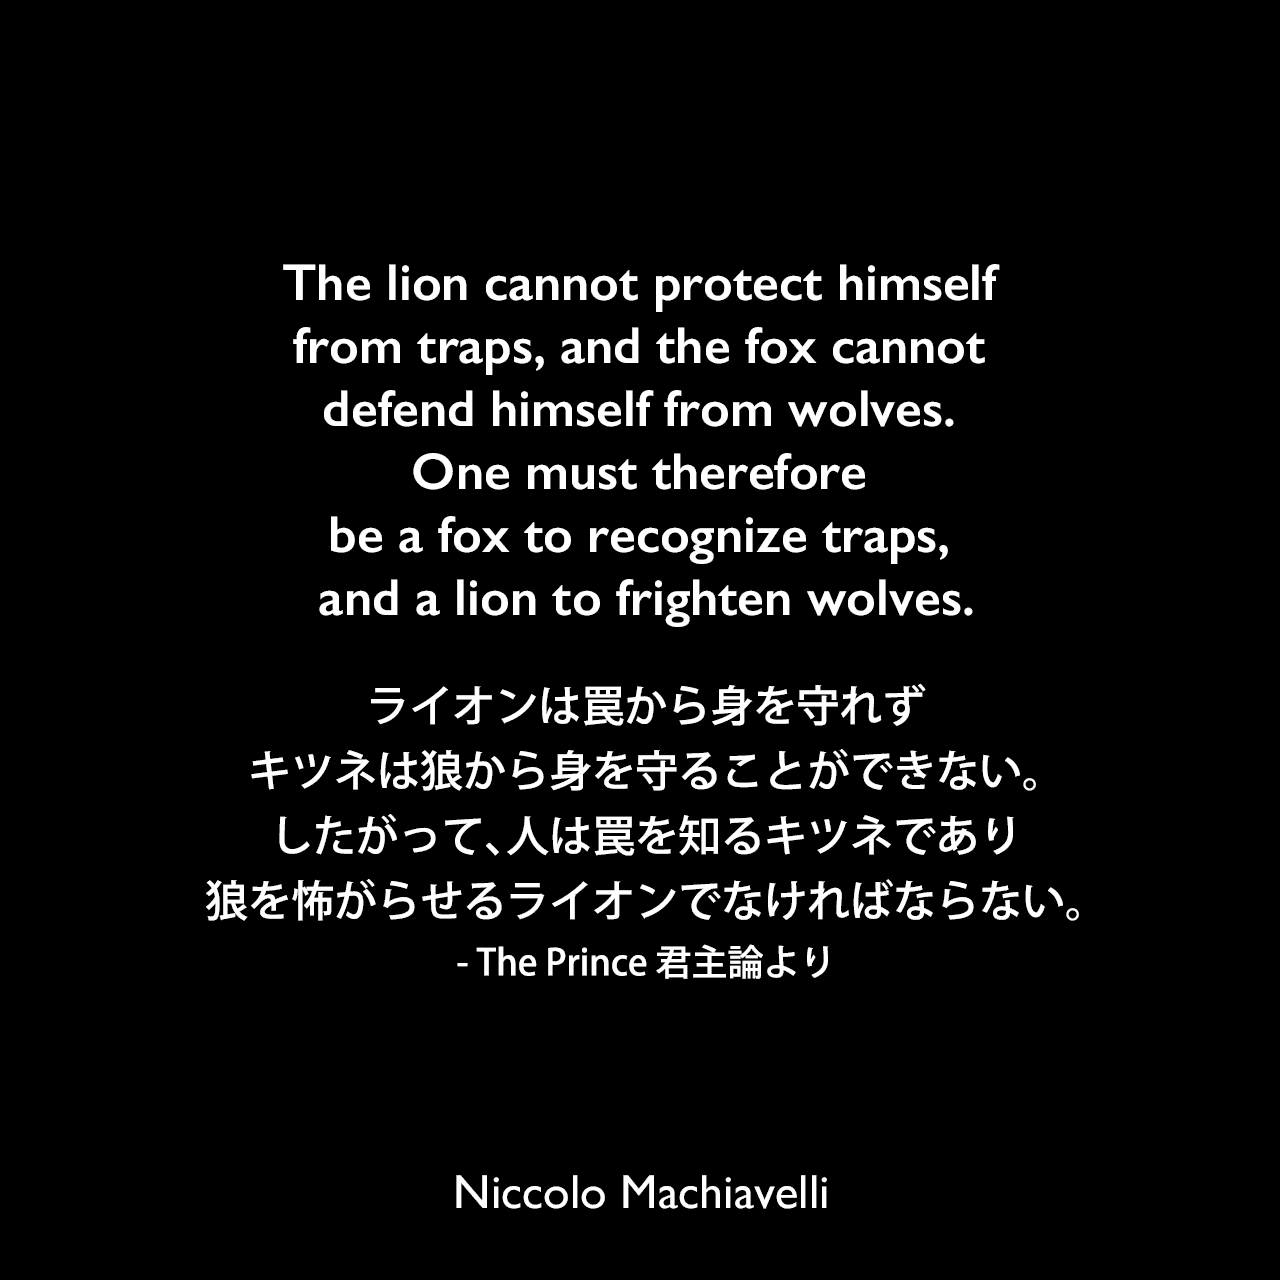 The lion cannot protect himself from traps, and the fox cannot defend himself from wolves. One must therefore be a fox to recognize traps, and a lion to frighten wolves.ライオンは罠から身を守れず、キツネは狼から身を守ることができない。したがって、人は罠を知るキツネであり、狼を怖がらせるライオンでなければならない。- The Prince 君主論よりNiccolo Machiavelli